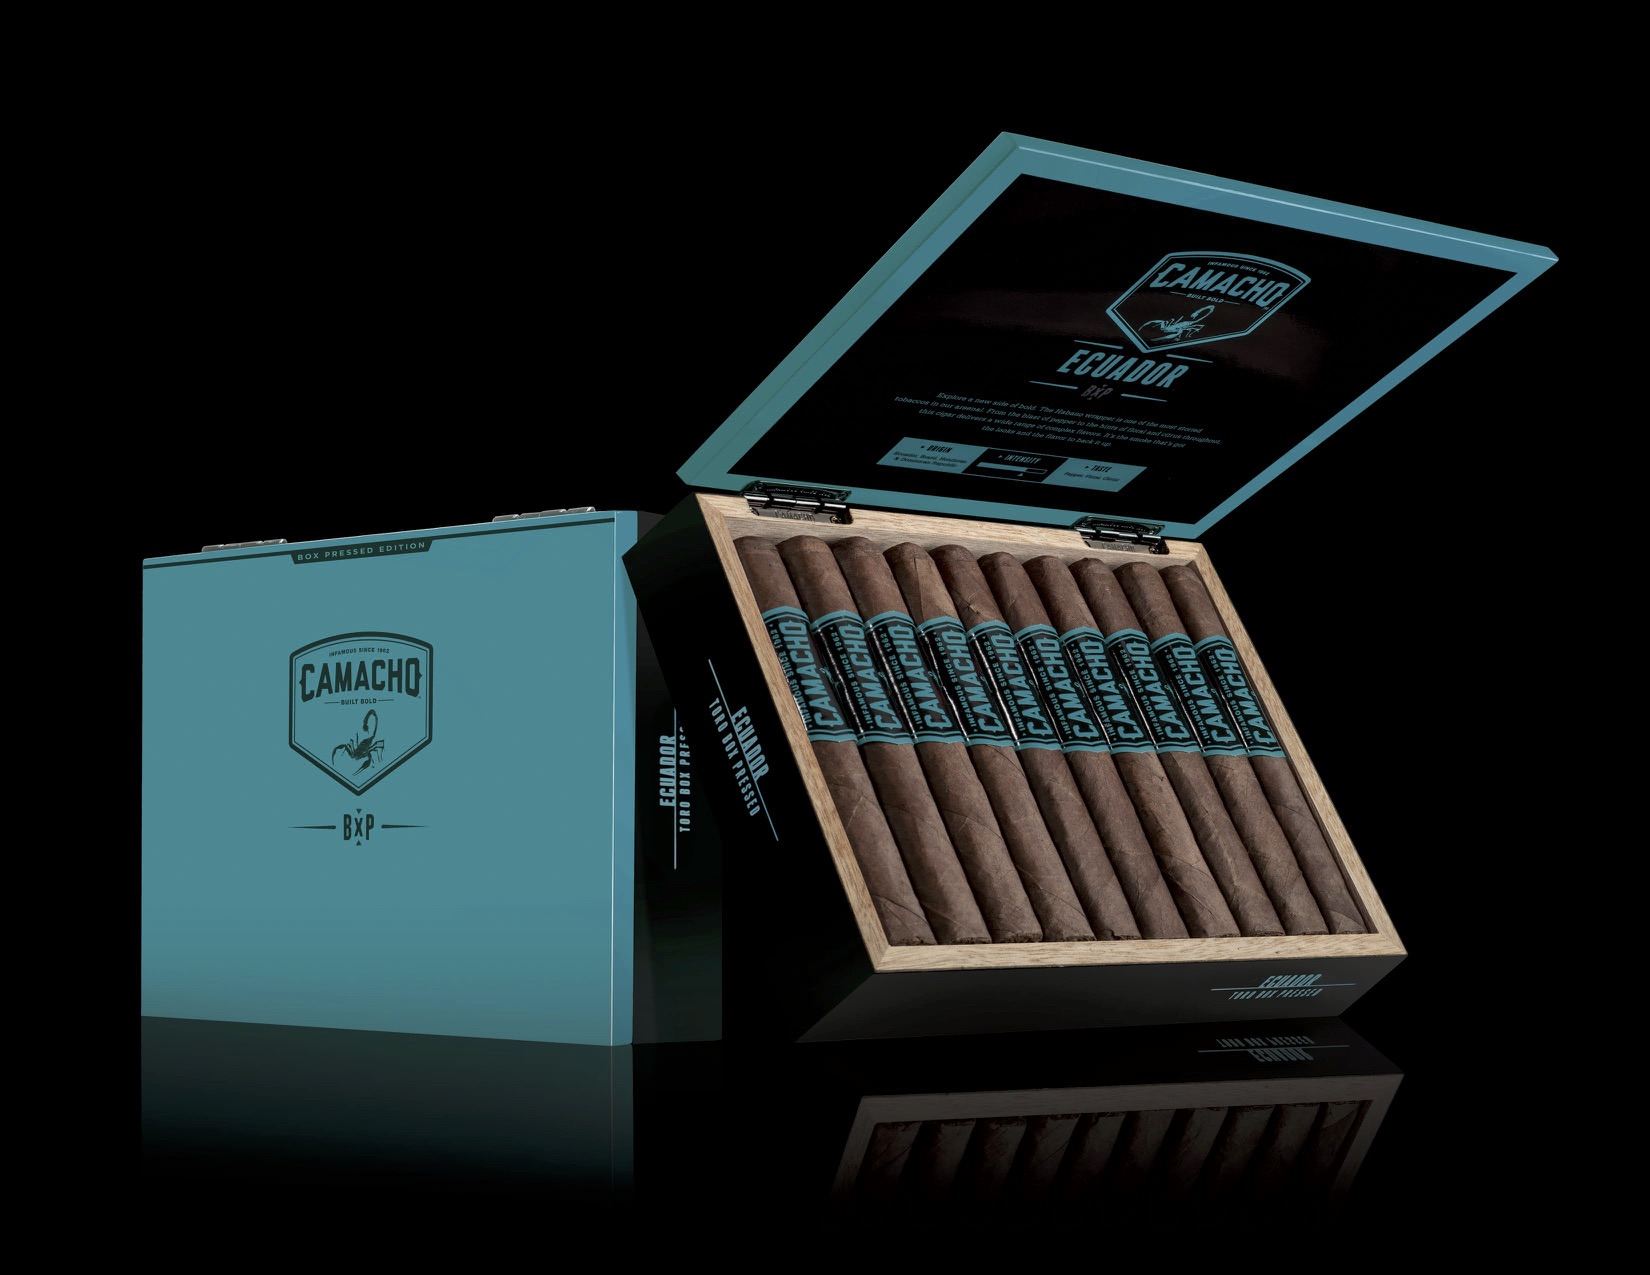 Cigar News: Camacho BXP Adds Box-Pressed Offerings to Three Lines